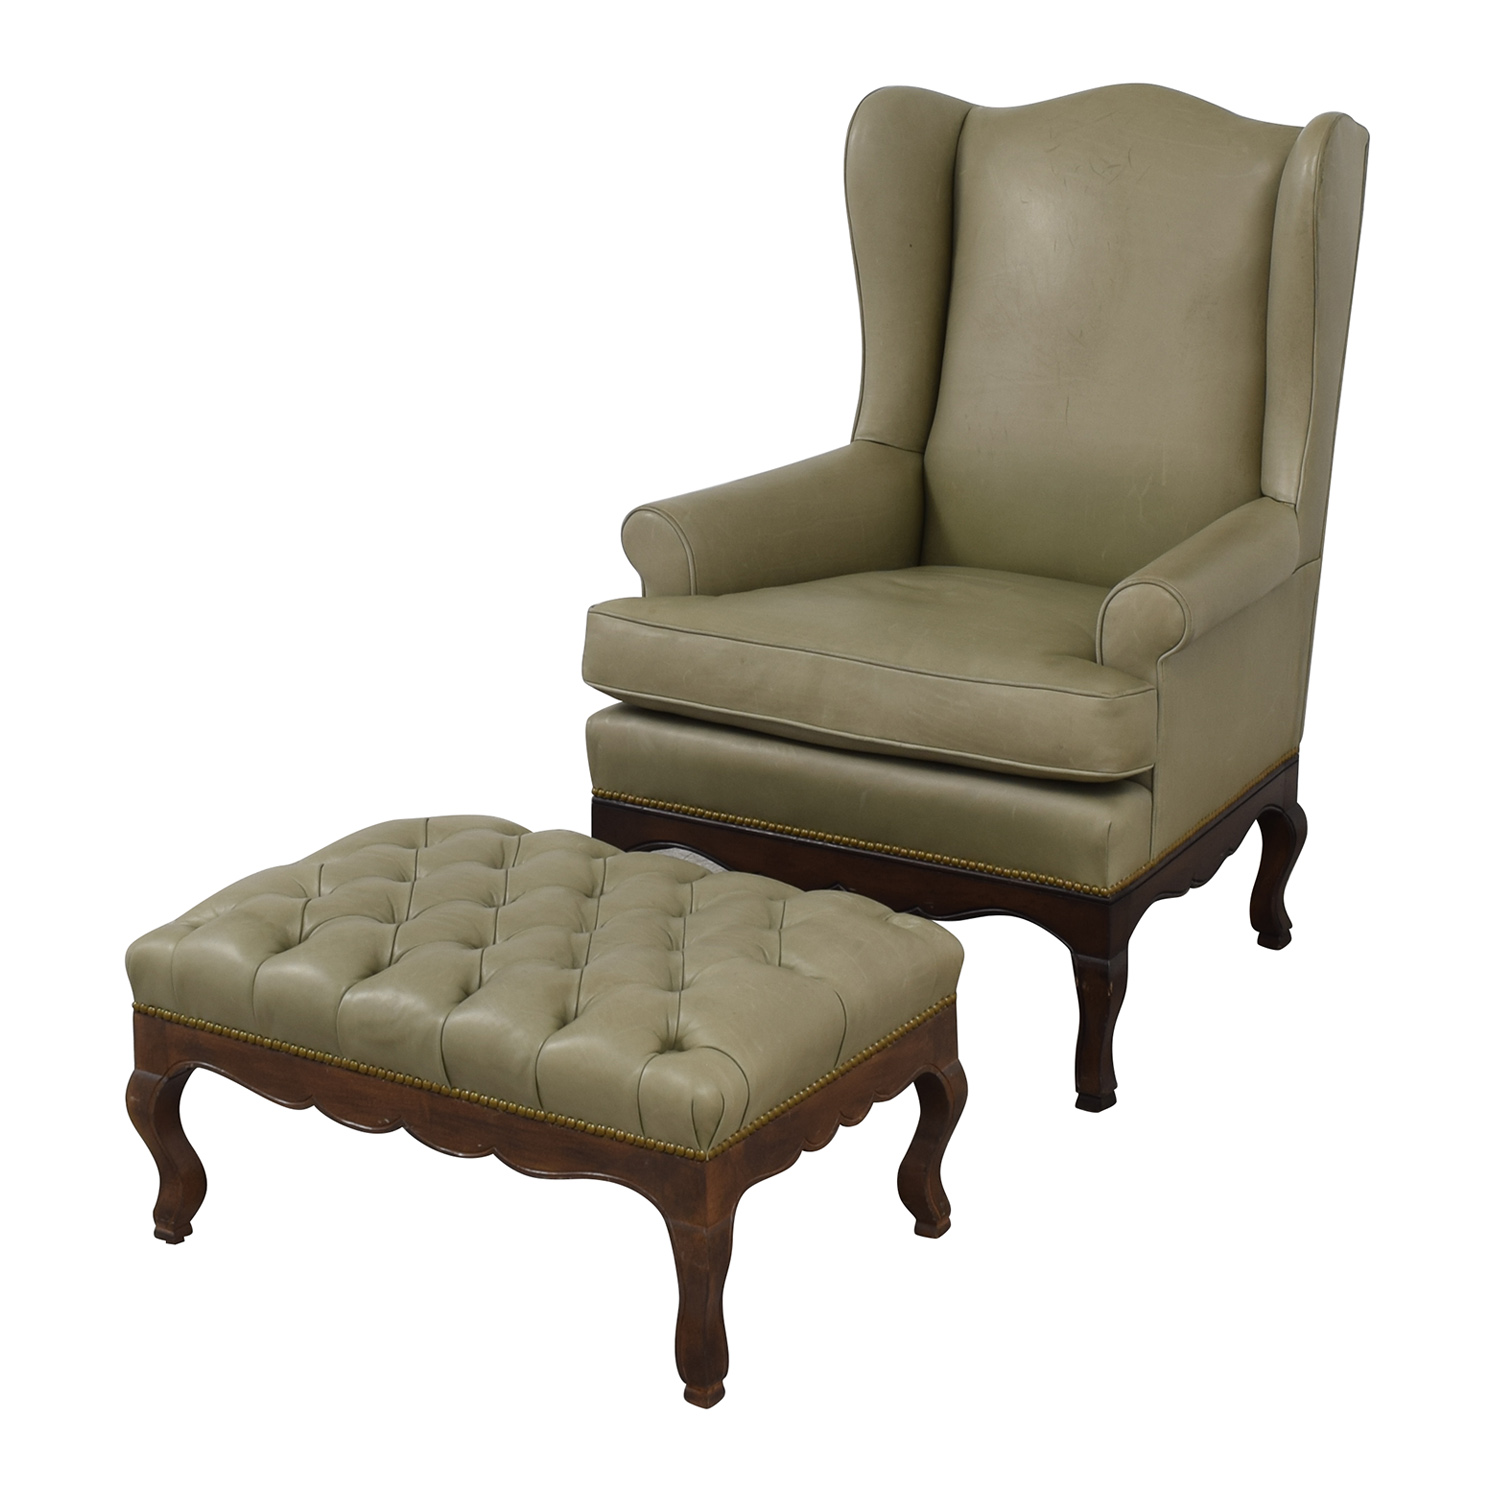 Pleasing 90 Off Green Leather Wing Back Chair With Tufted Ottoman Chairs Camellatalisay Diy Chair Ideas Camellatalisaycom